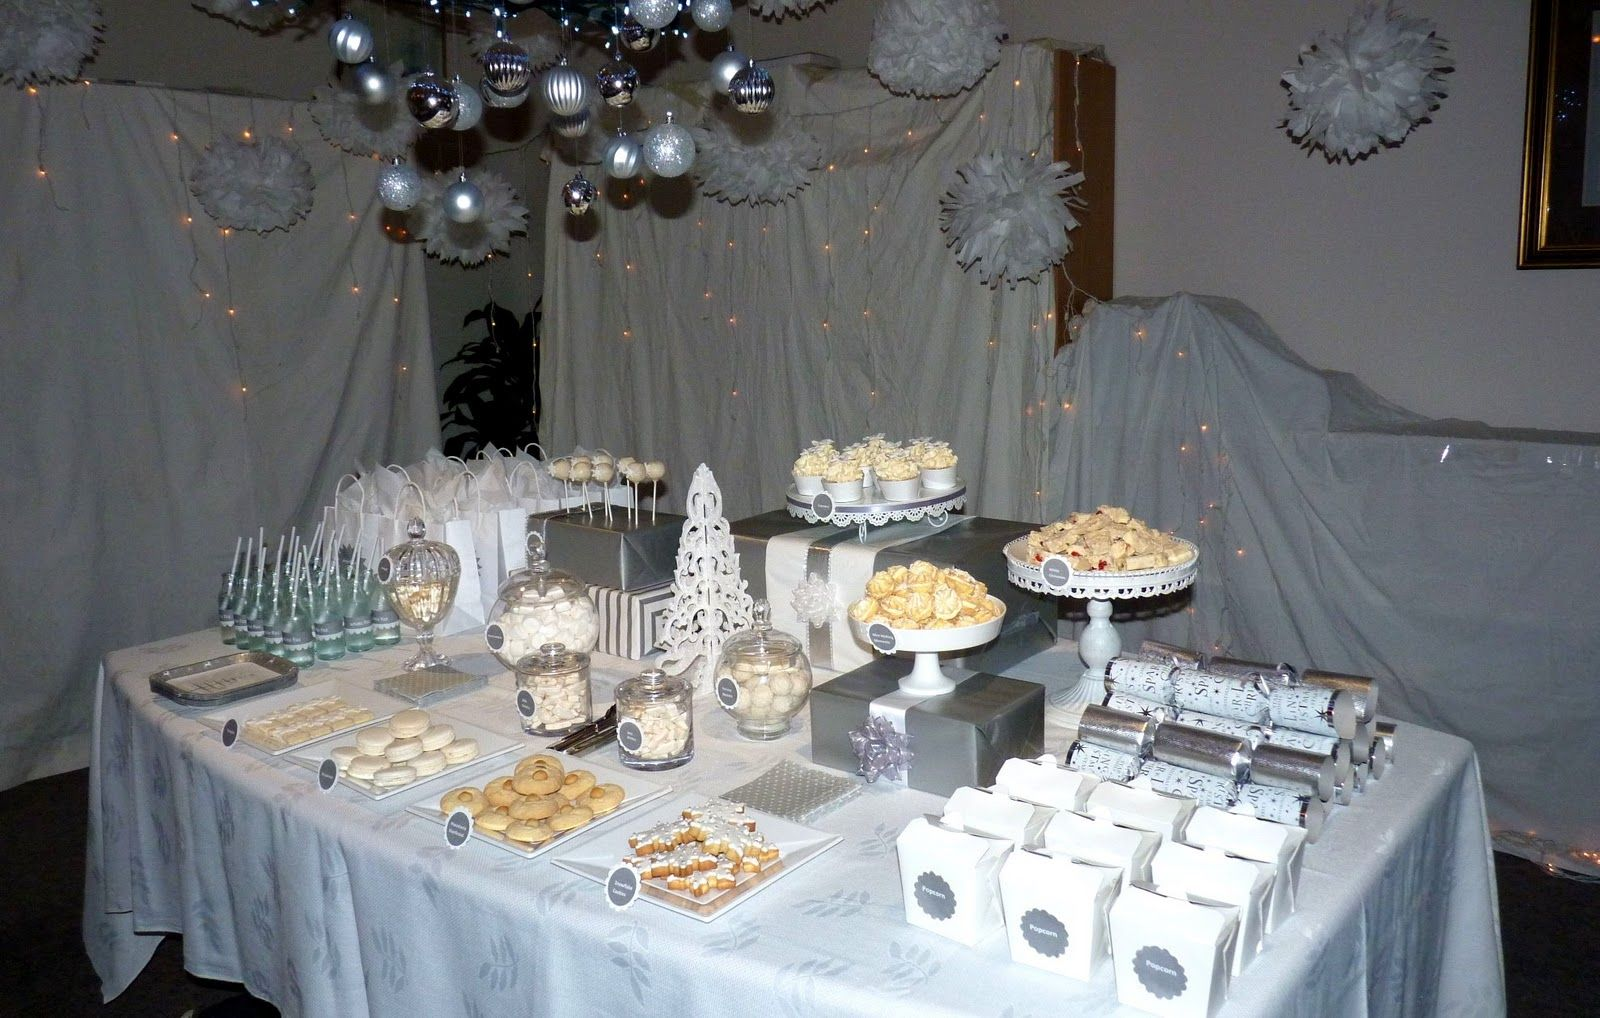 Awesome White Christmas Party Theme Ideas Part - 8: Image Detail For -Bubble And Sweet: White Christmas Wonderland Party